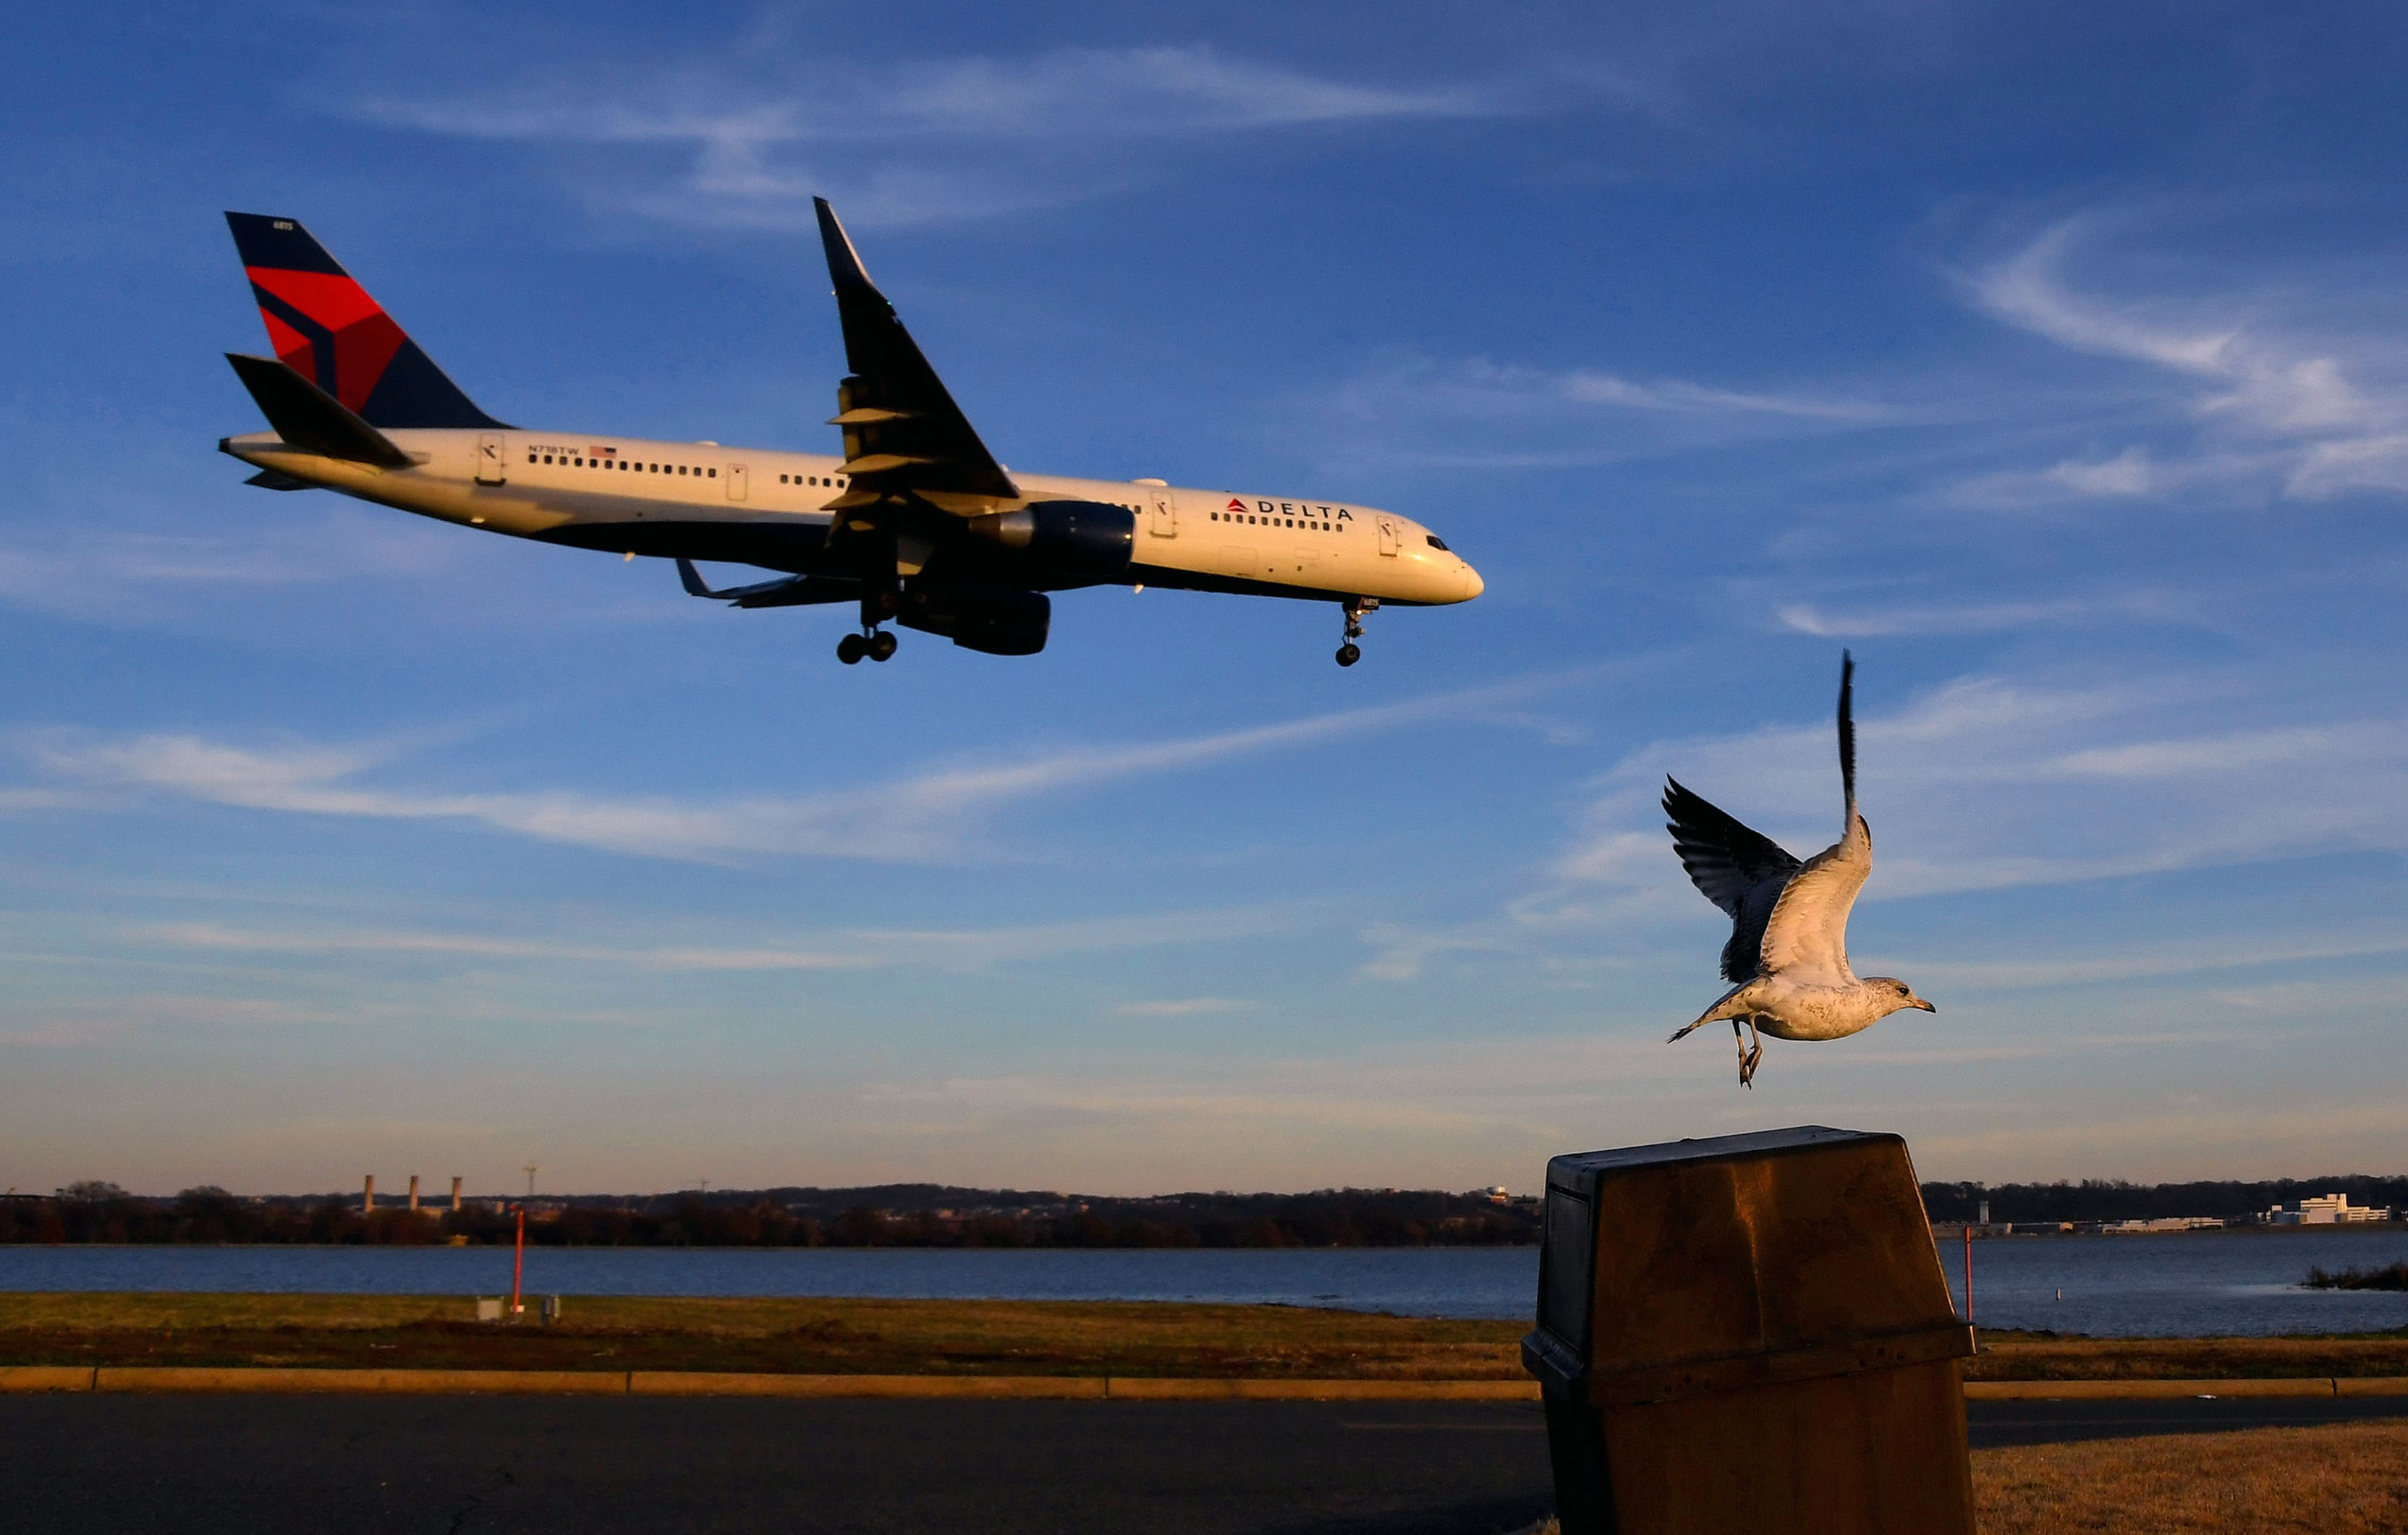 Government shutdown: Grounded new planes, routes, safety inspections